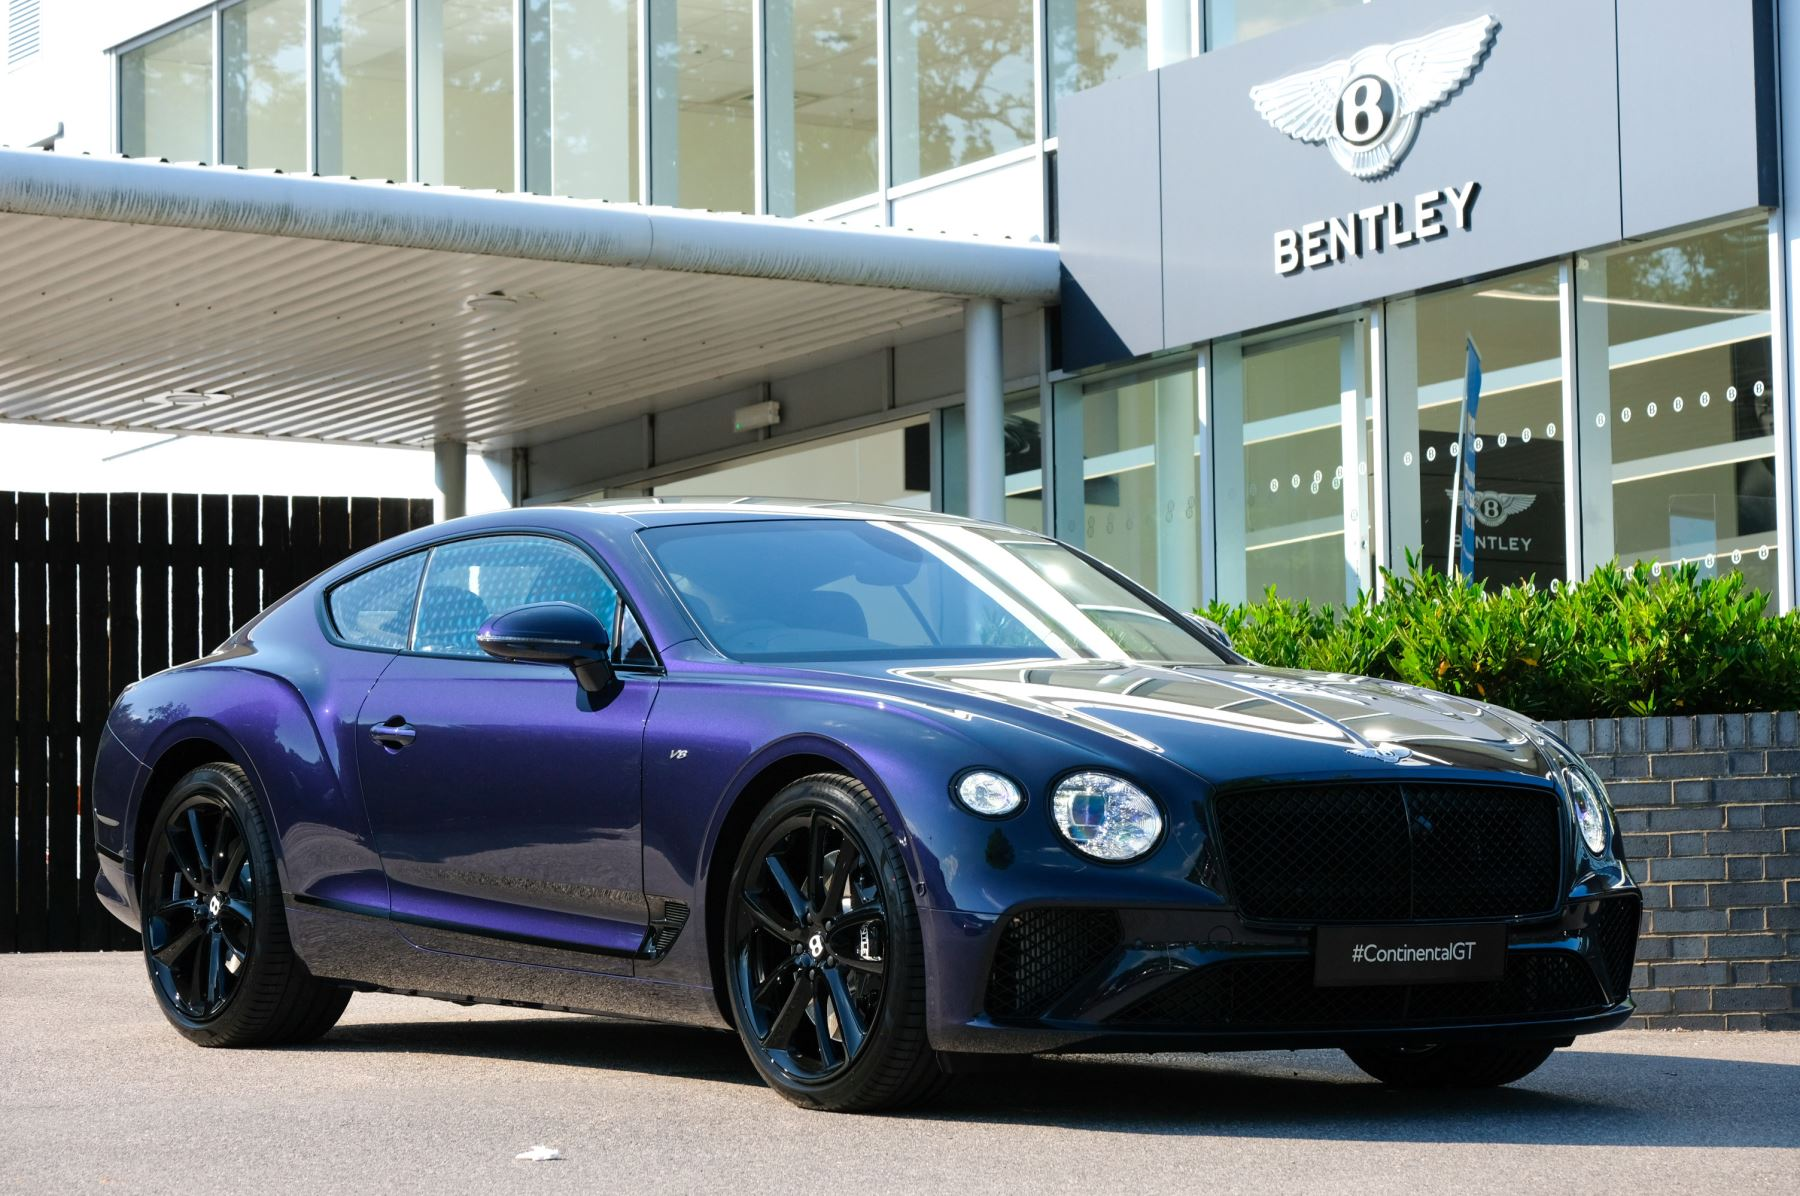 Bentley Continental GT Mulliner Driving Specification with Black Painted Wheel - Exclusive to Continental Black 4.0 Automatic 2 door Saloon